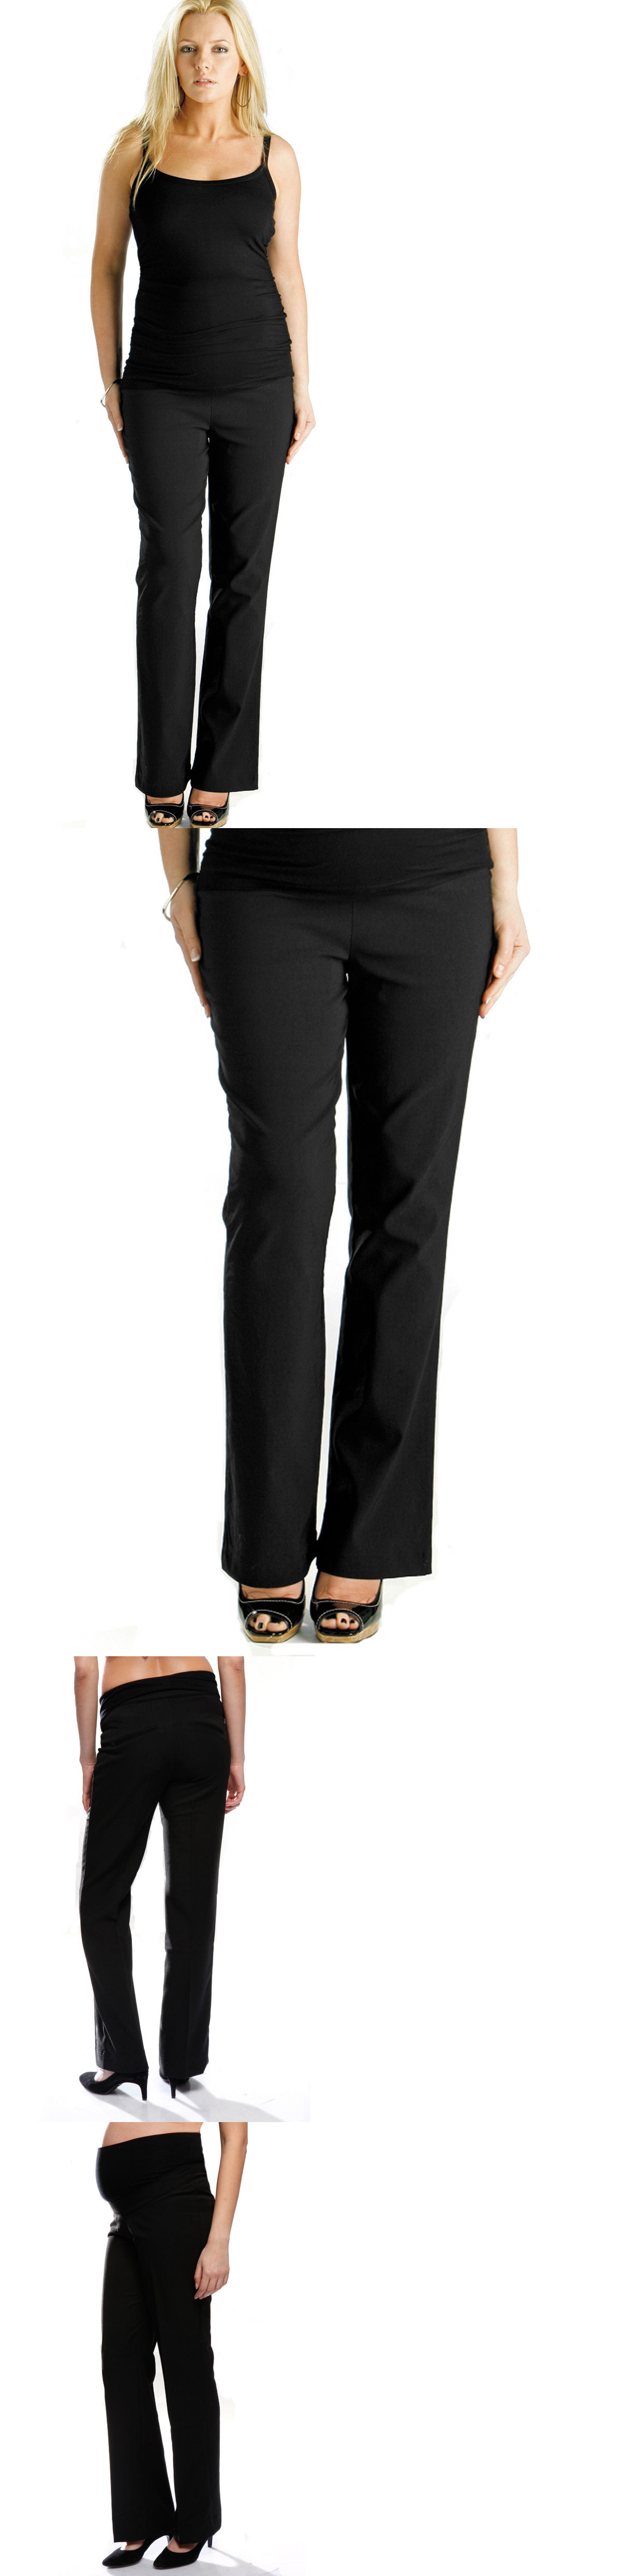 Pants 63857 pregnancy work trousers smart office maternity pants 63857 pregnancy work trousers smart office maternity clothing tall short size 8 ombrellifo Images